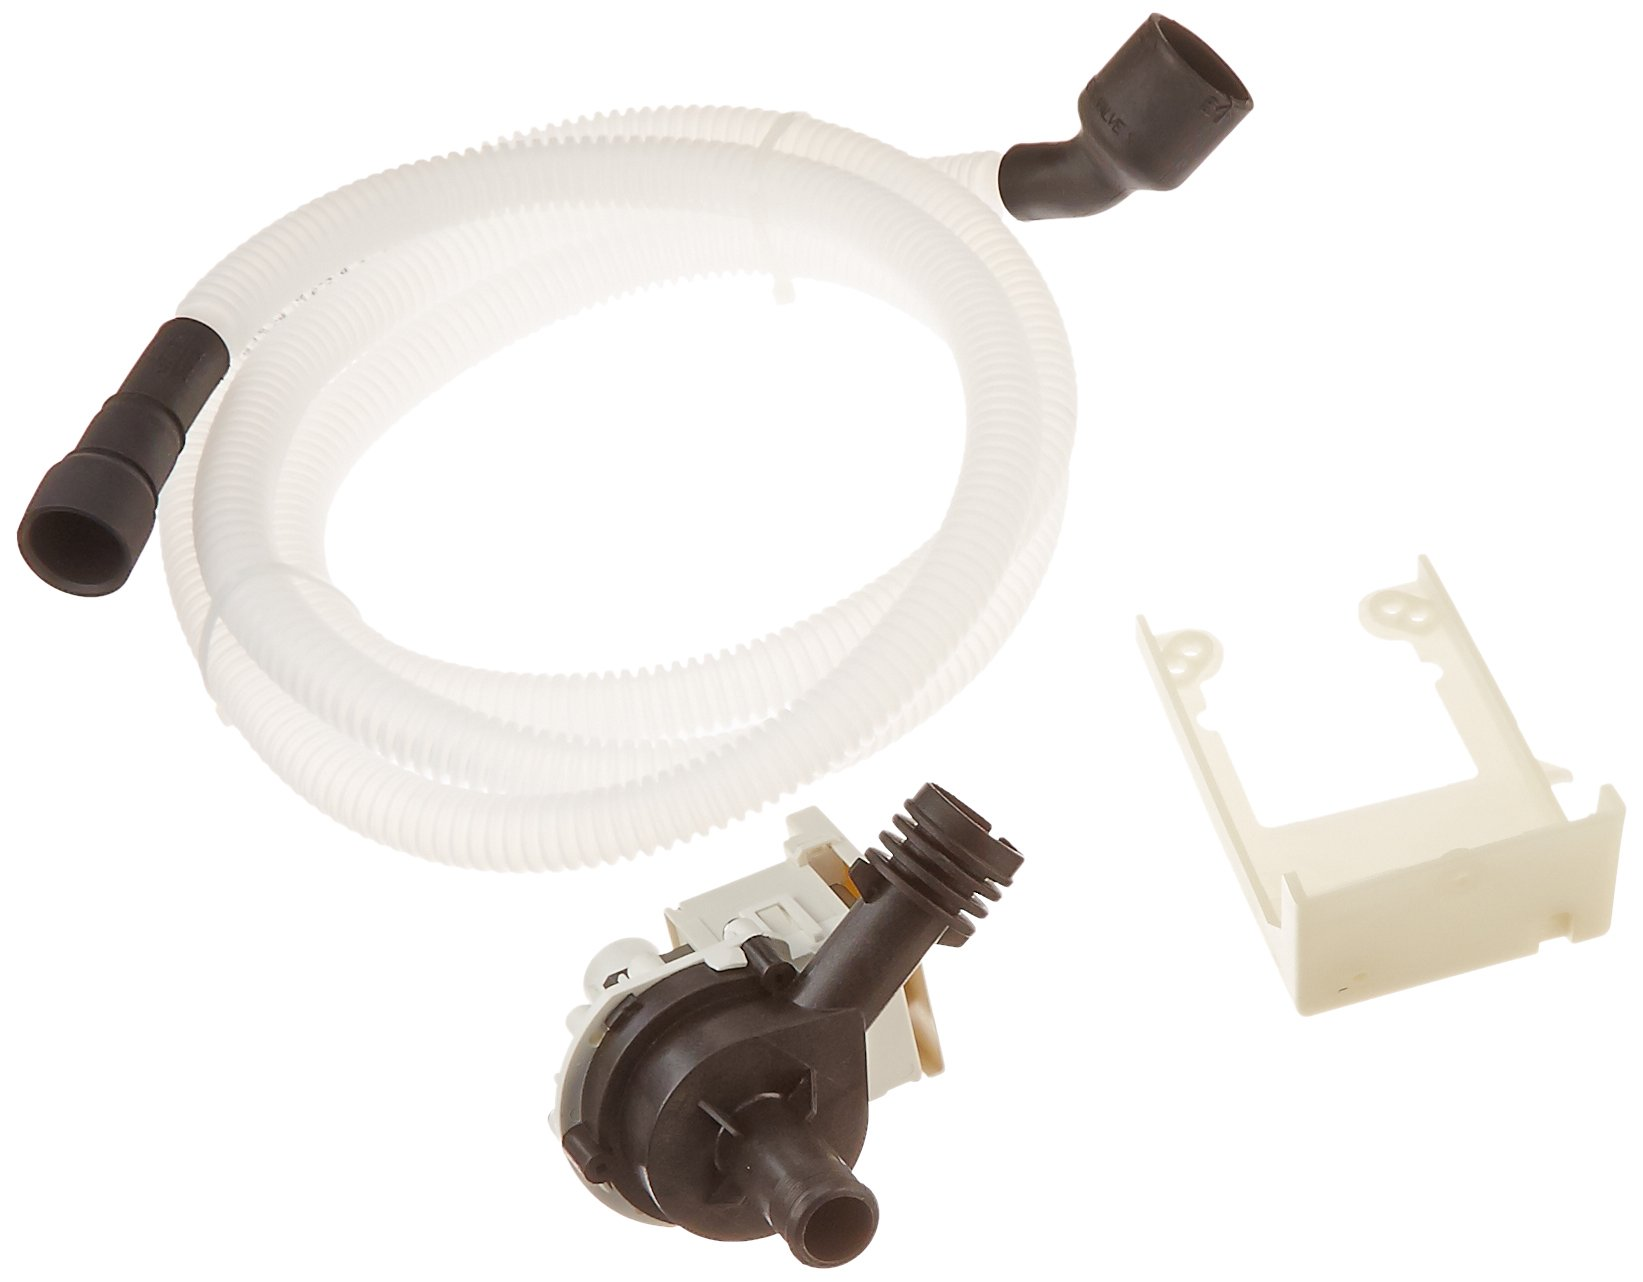 Frigidaire 5304475805 Drain Pump Dishwasher